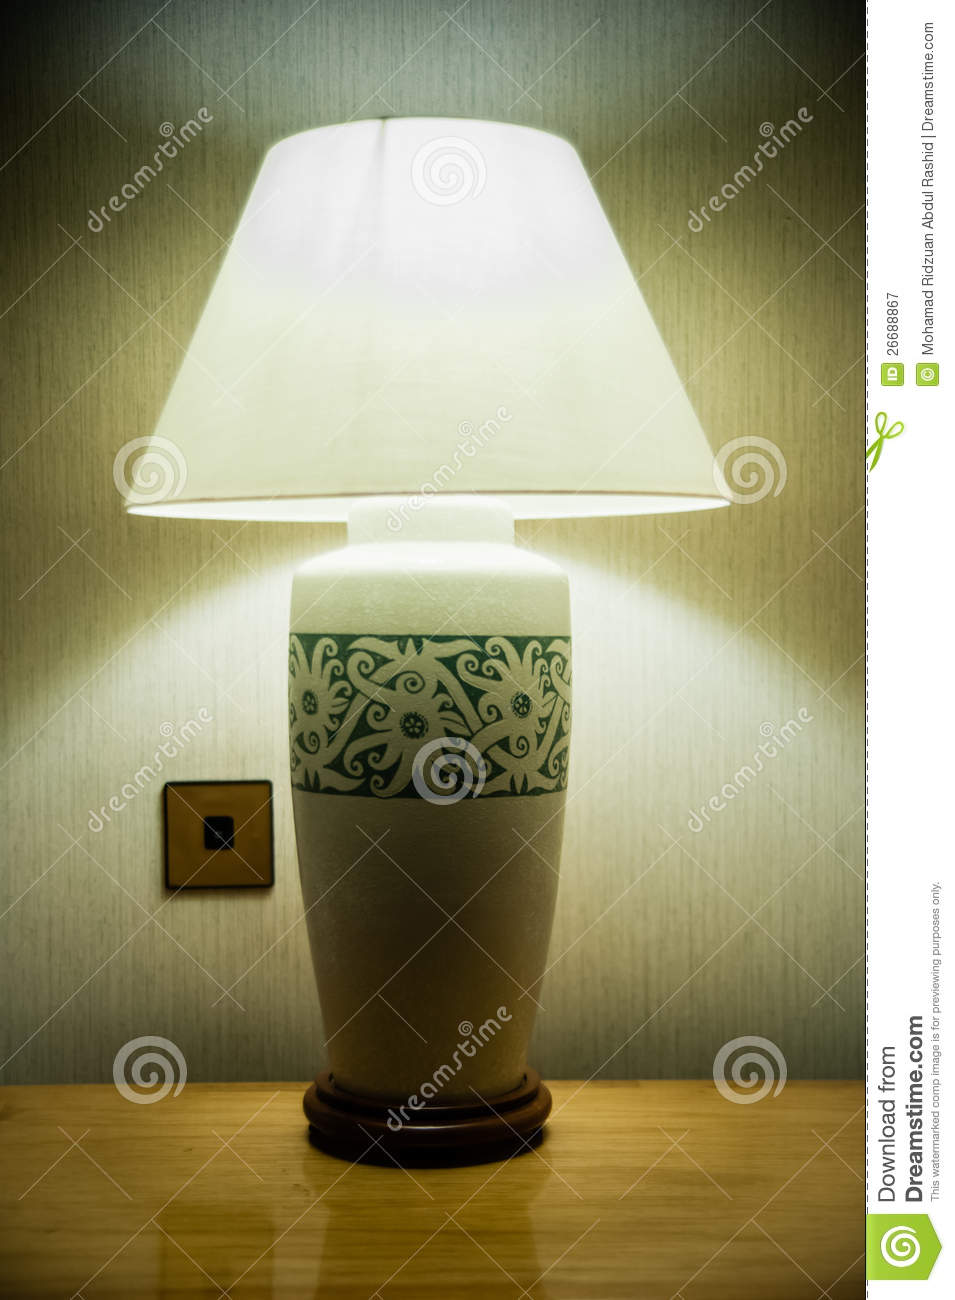 Sarawak craft table lamp stock image image of sarawak 26688867 download comp mozeypictures Image collections